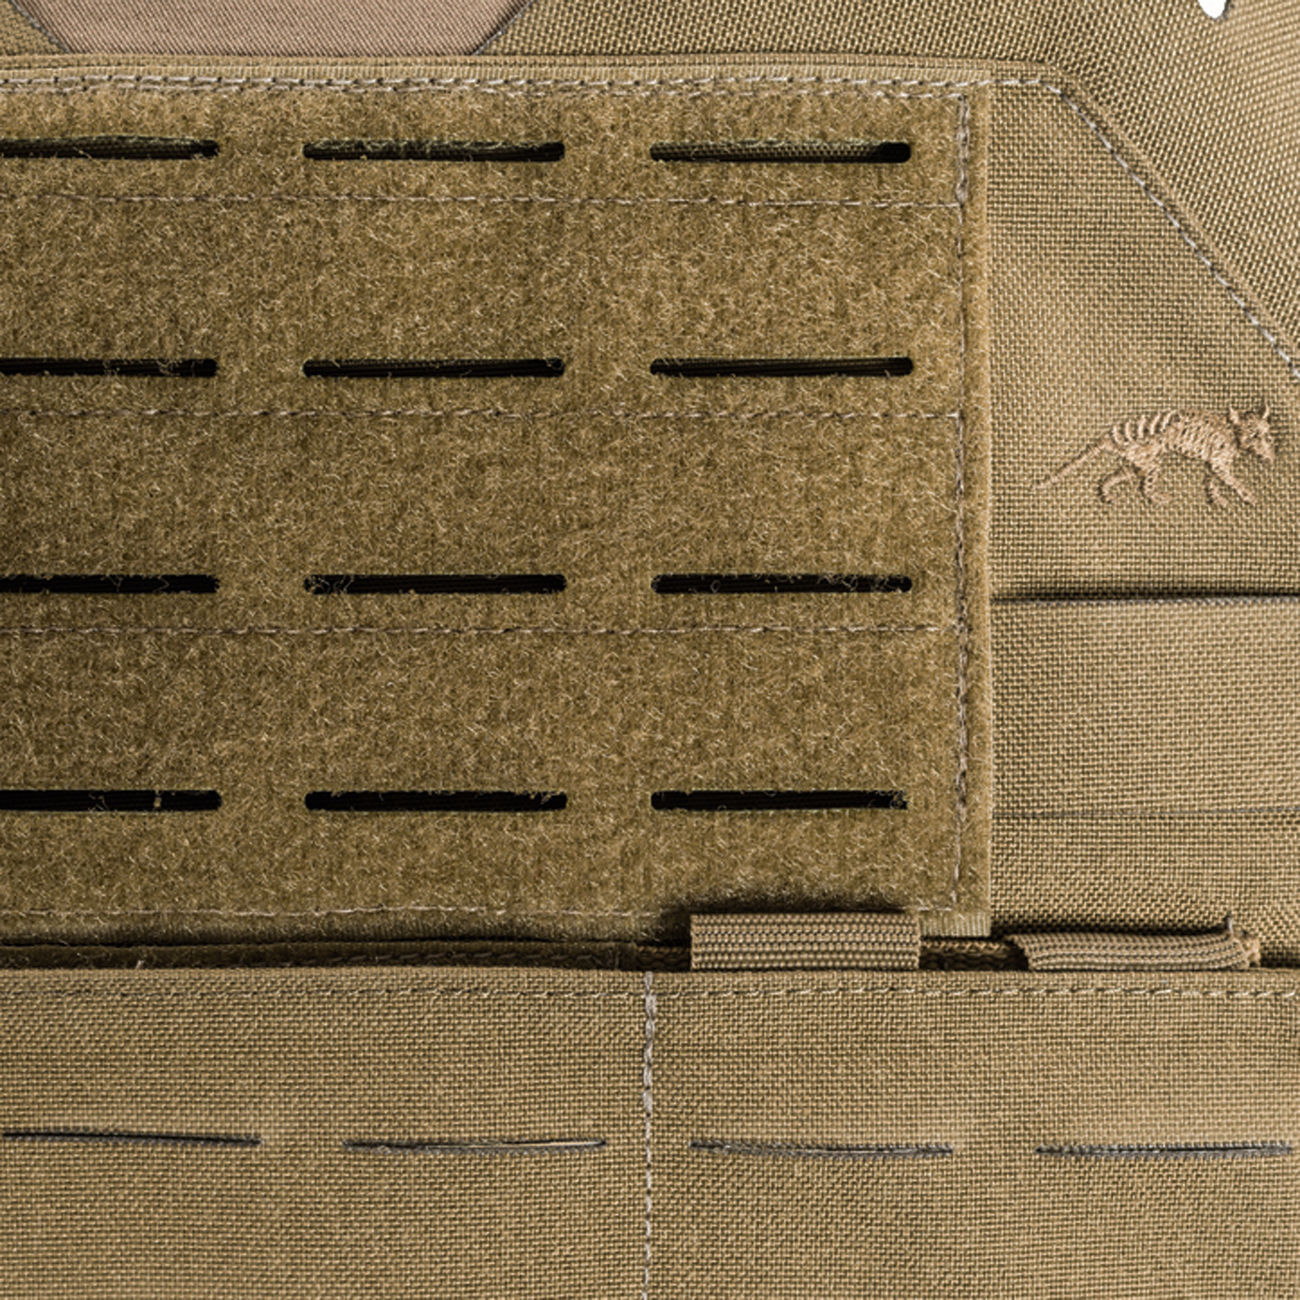 TT Plate Carrier LC coyote brown 3